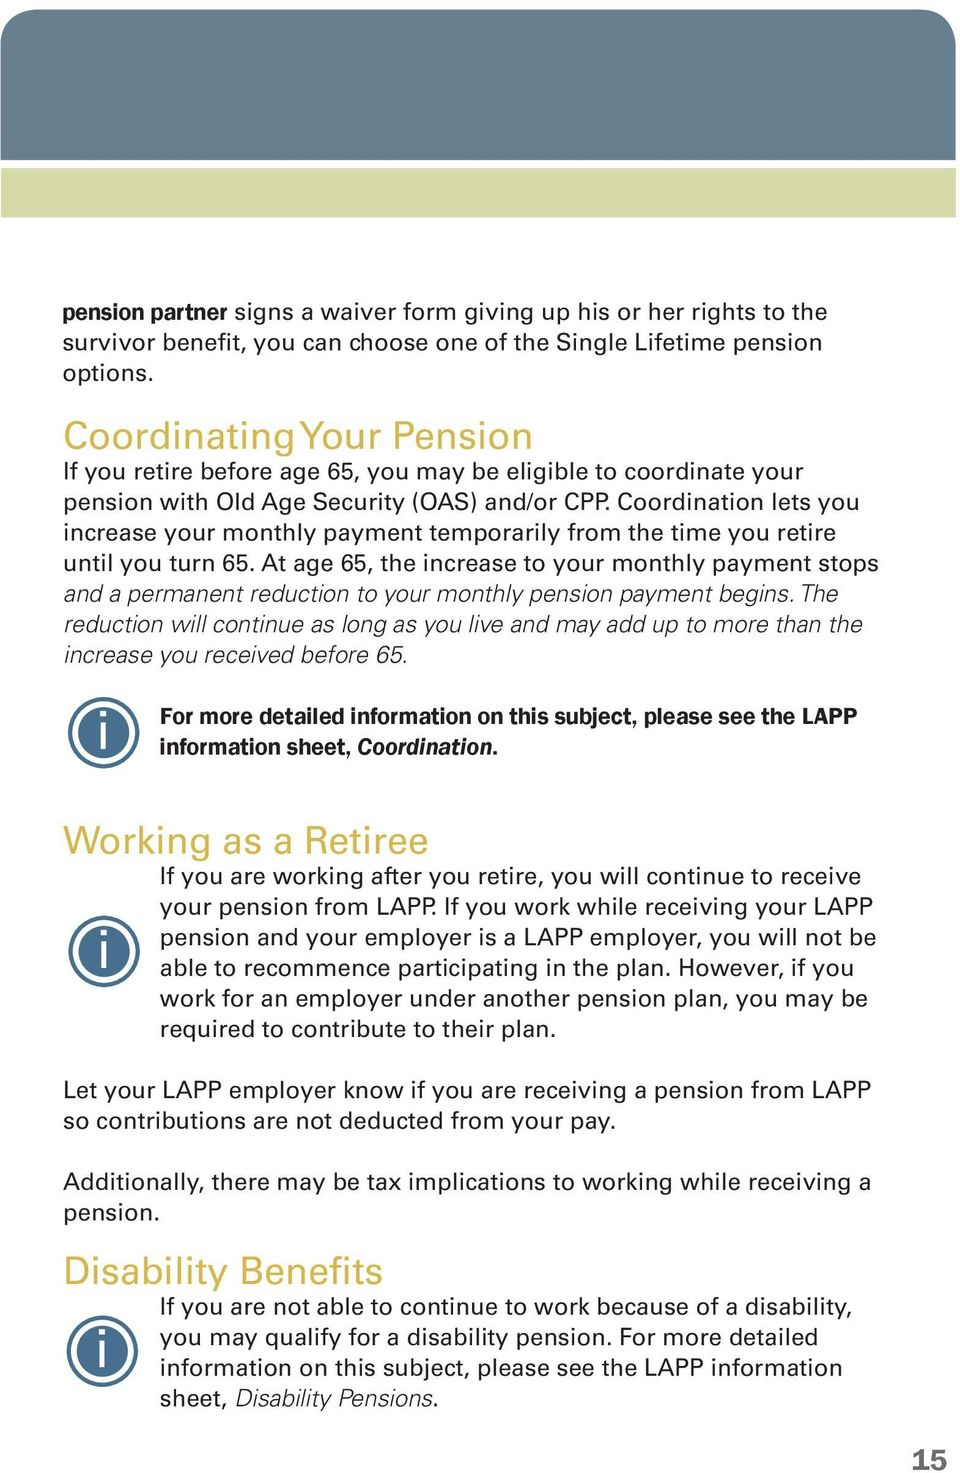 Coordination lets you increase your monthly payment temporarily from the time you retire until you turn 65.